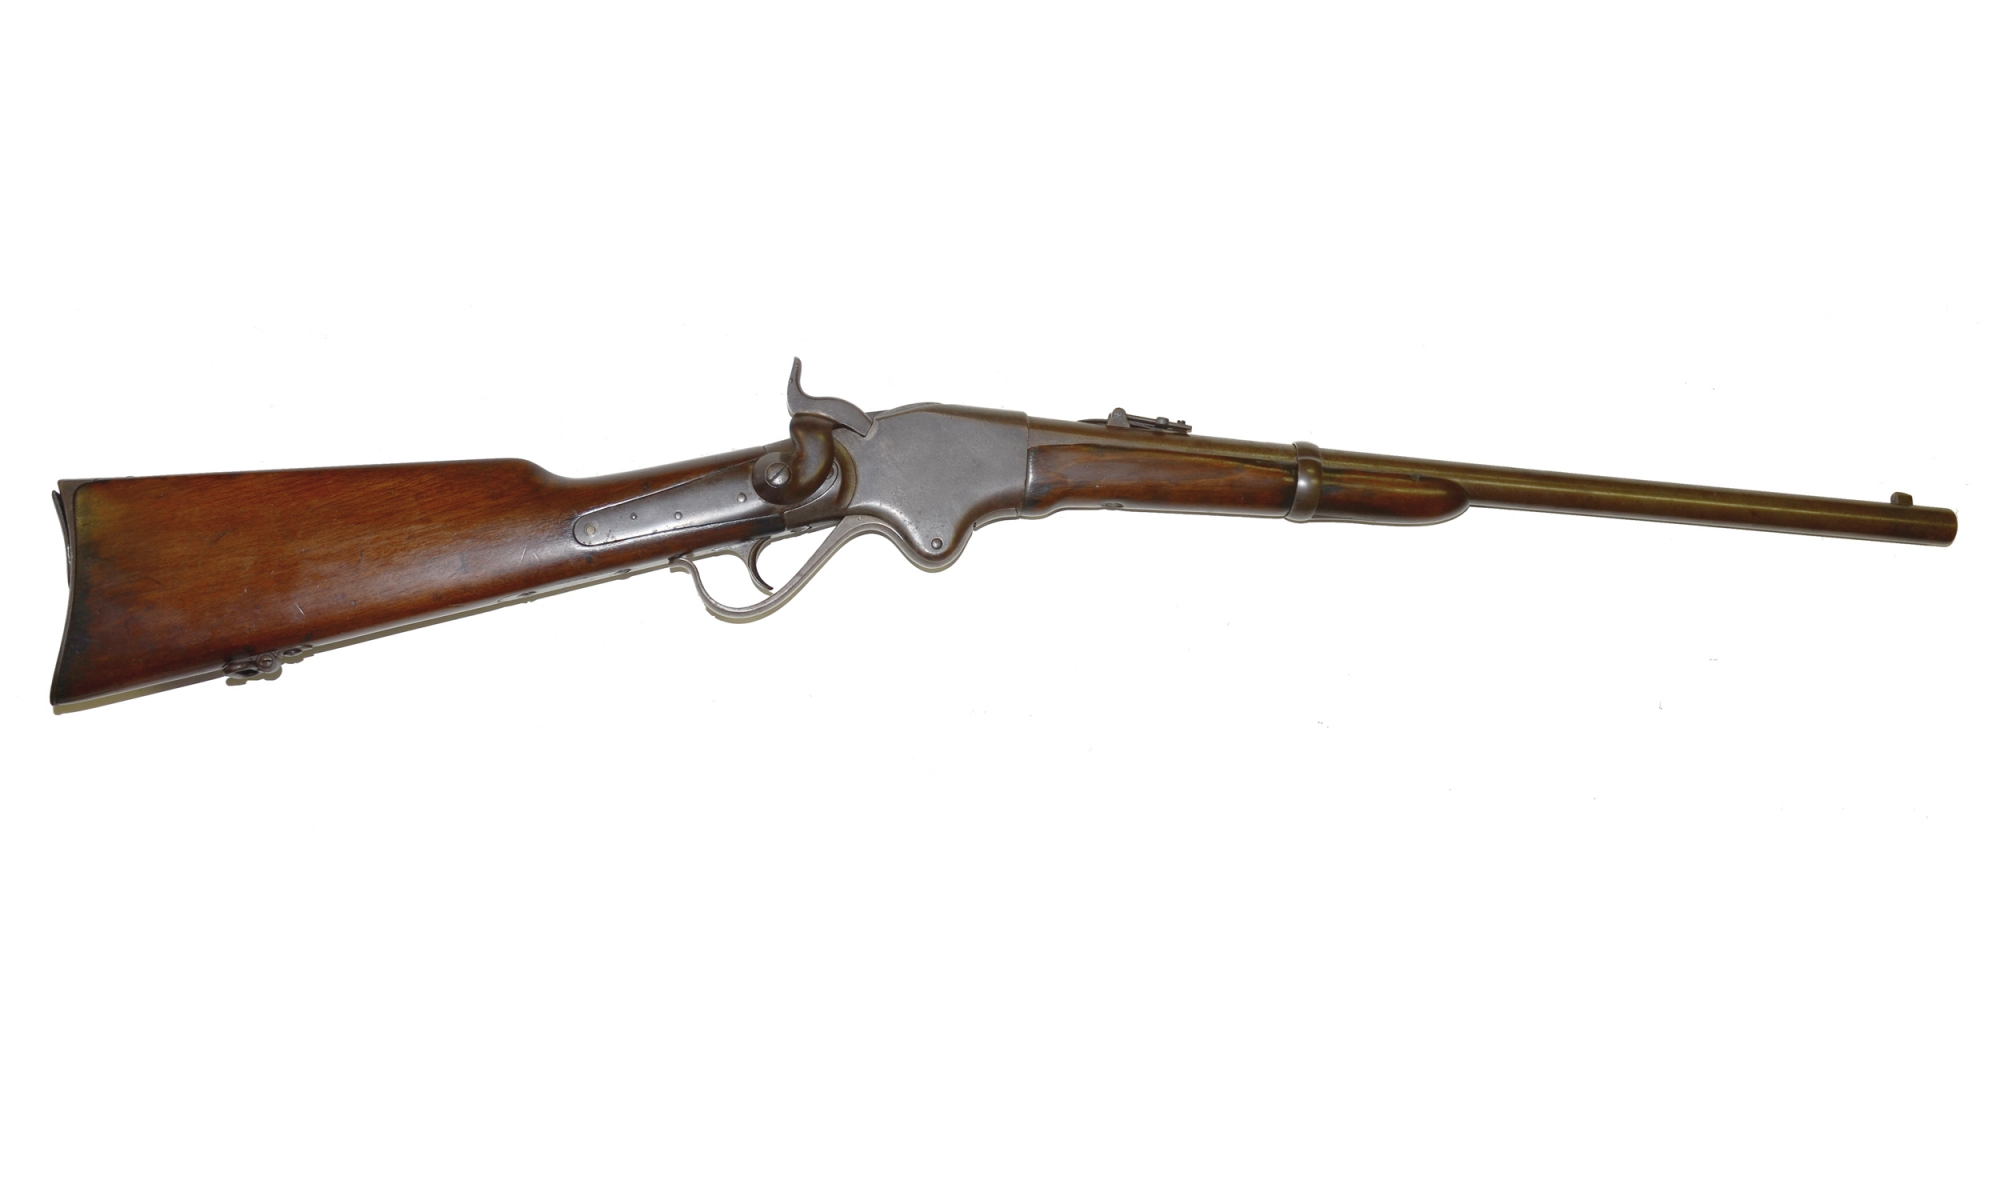 EXCELLENT CIVIL WAR MODEL 1860 SPENCER CARBINE